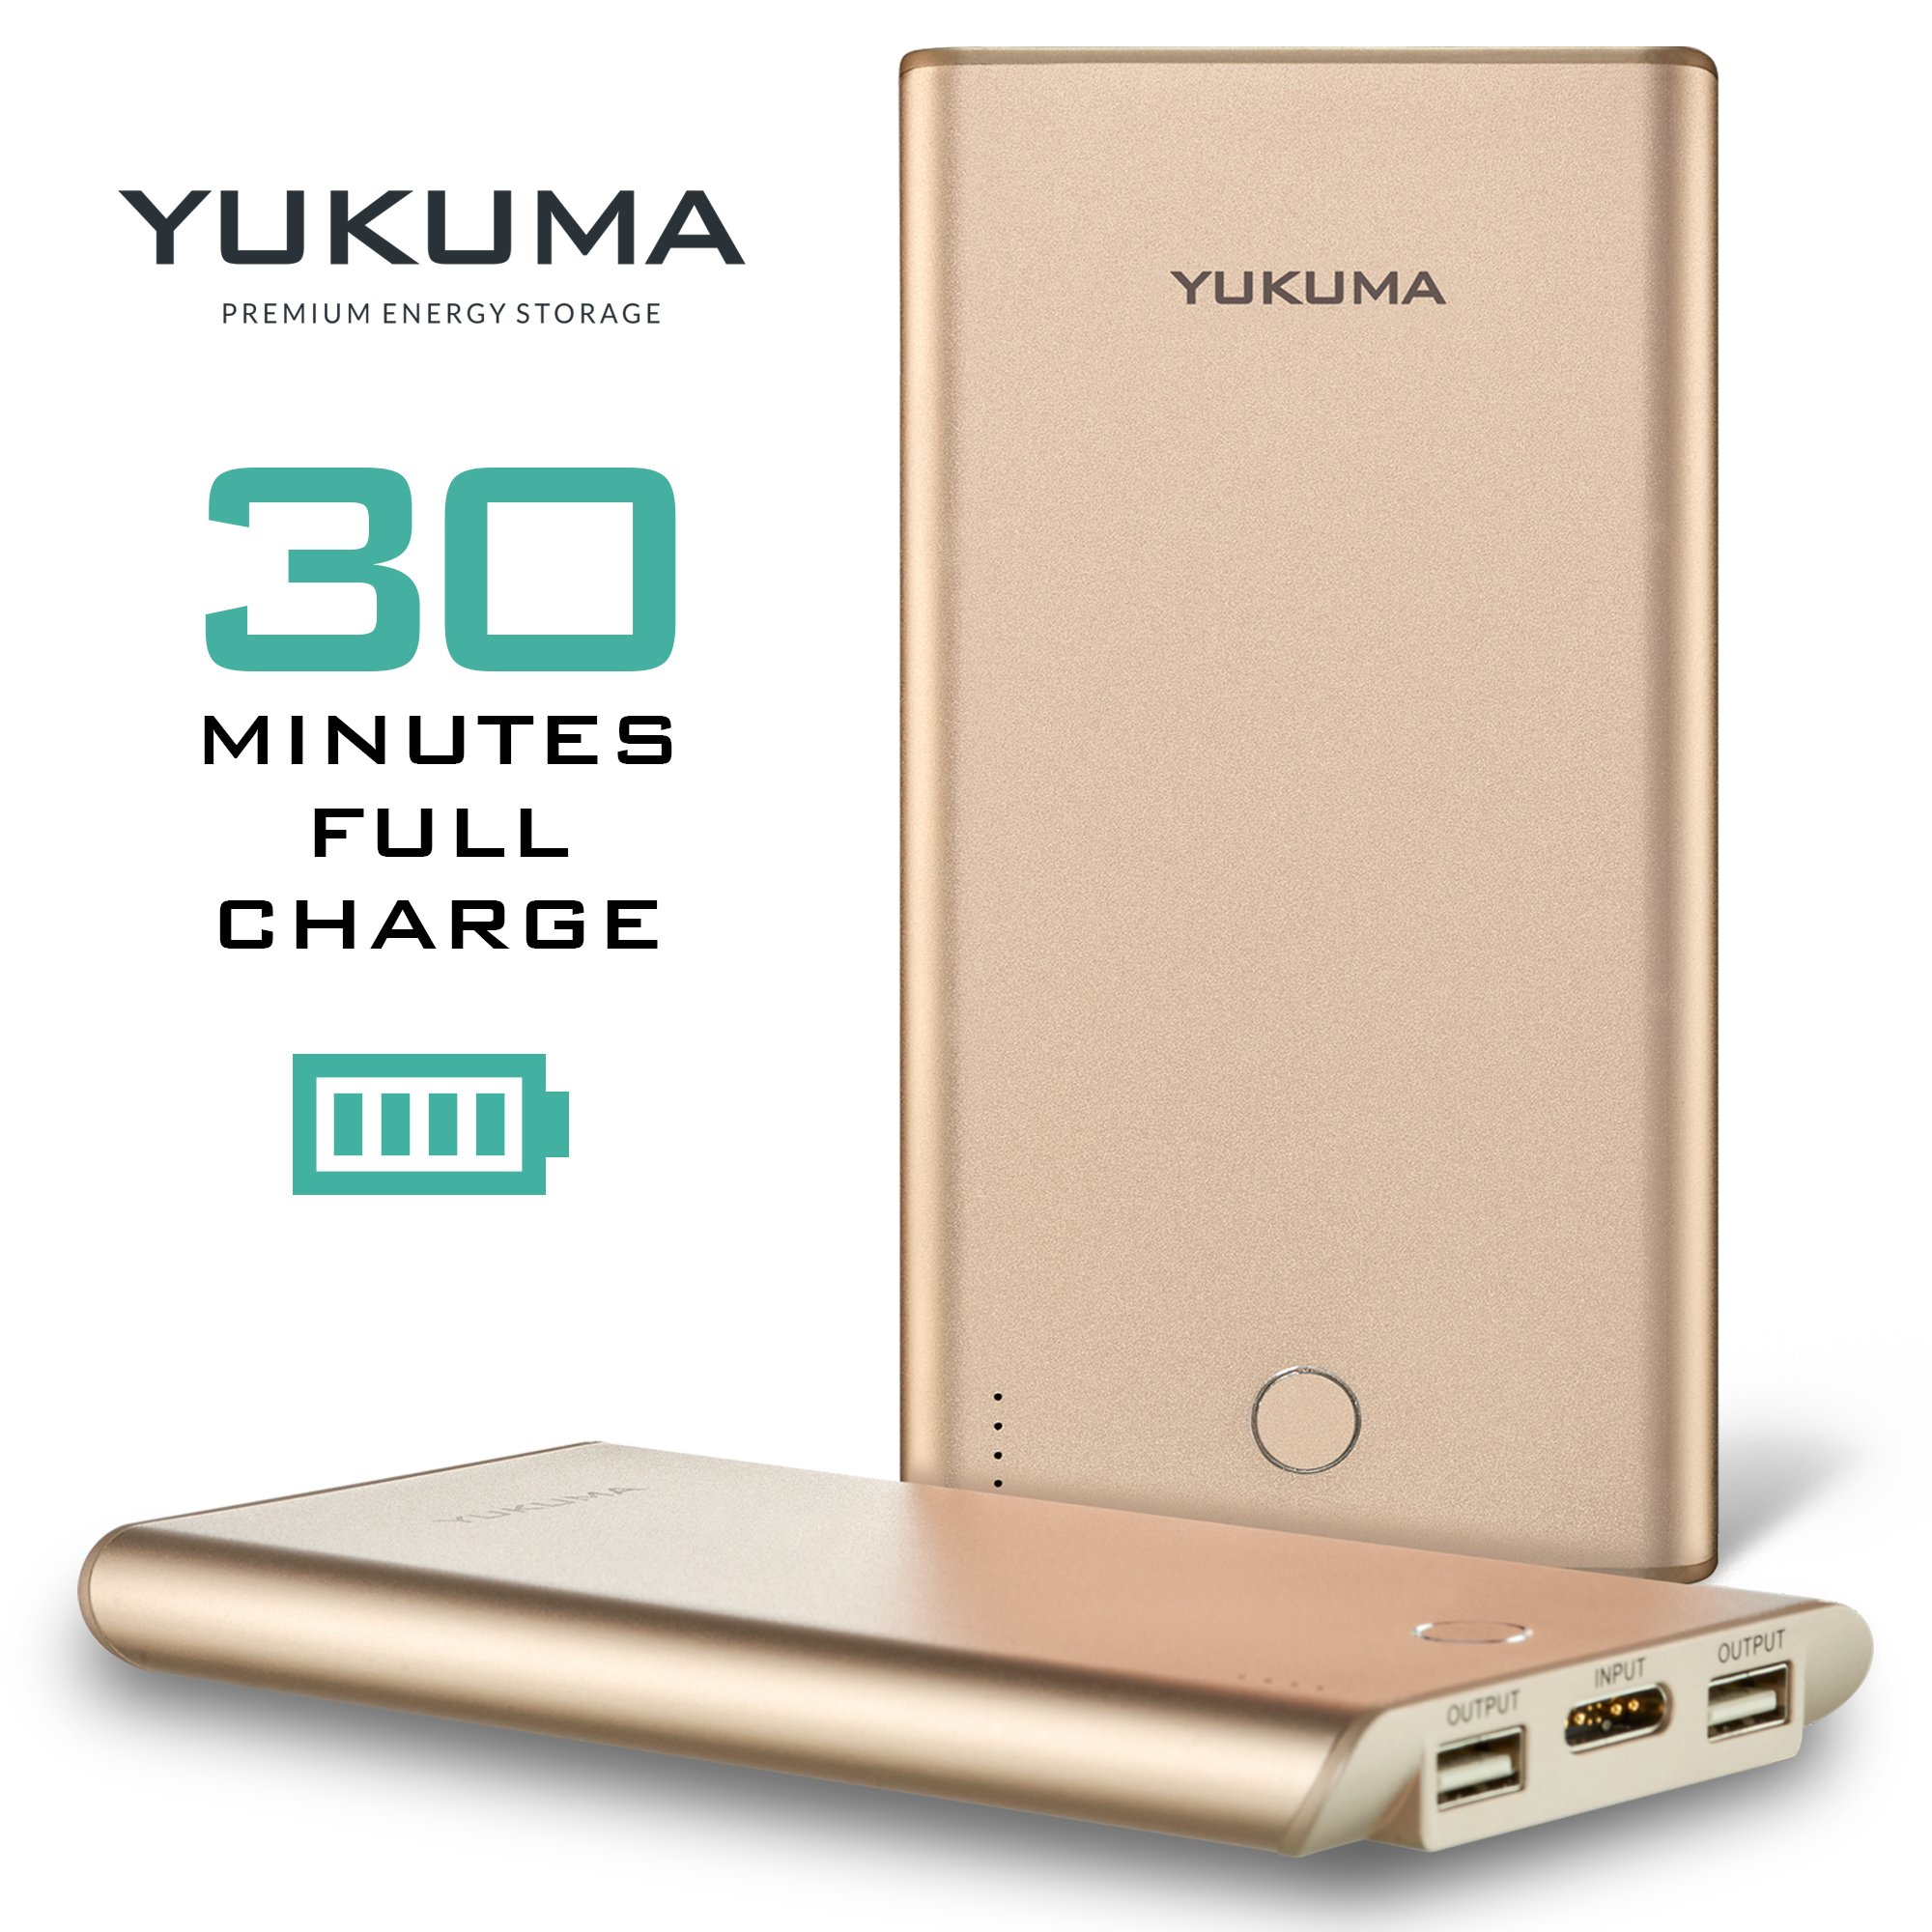 Yukuma Power Bank - World's Fastest Recharge - 30 Minutes - 10000 mAH - / Portable Charger External Batteries For Phones, Tablets, Cameras [German Engineered] (FCC, CE Certified) - Champagne Gold by Yukuma